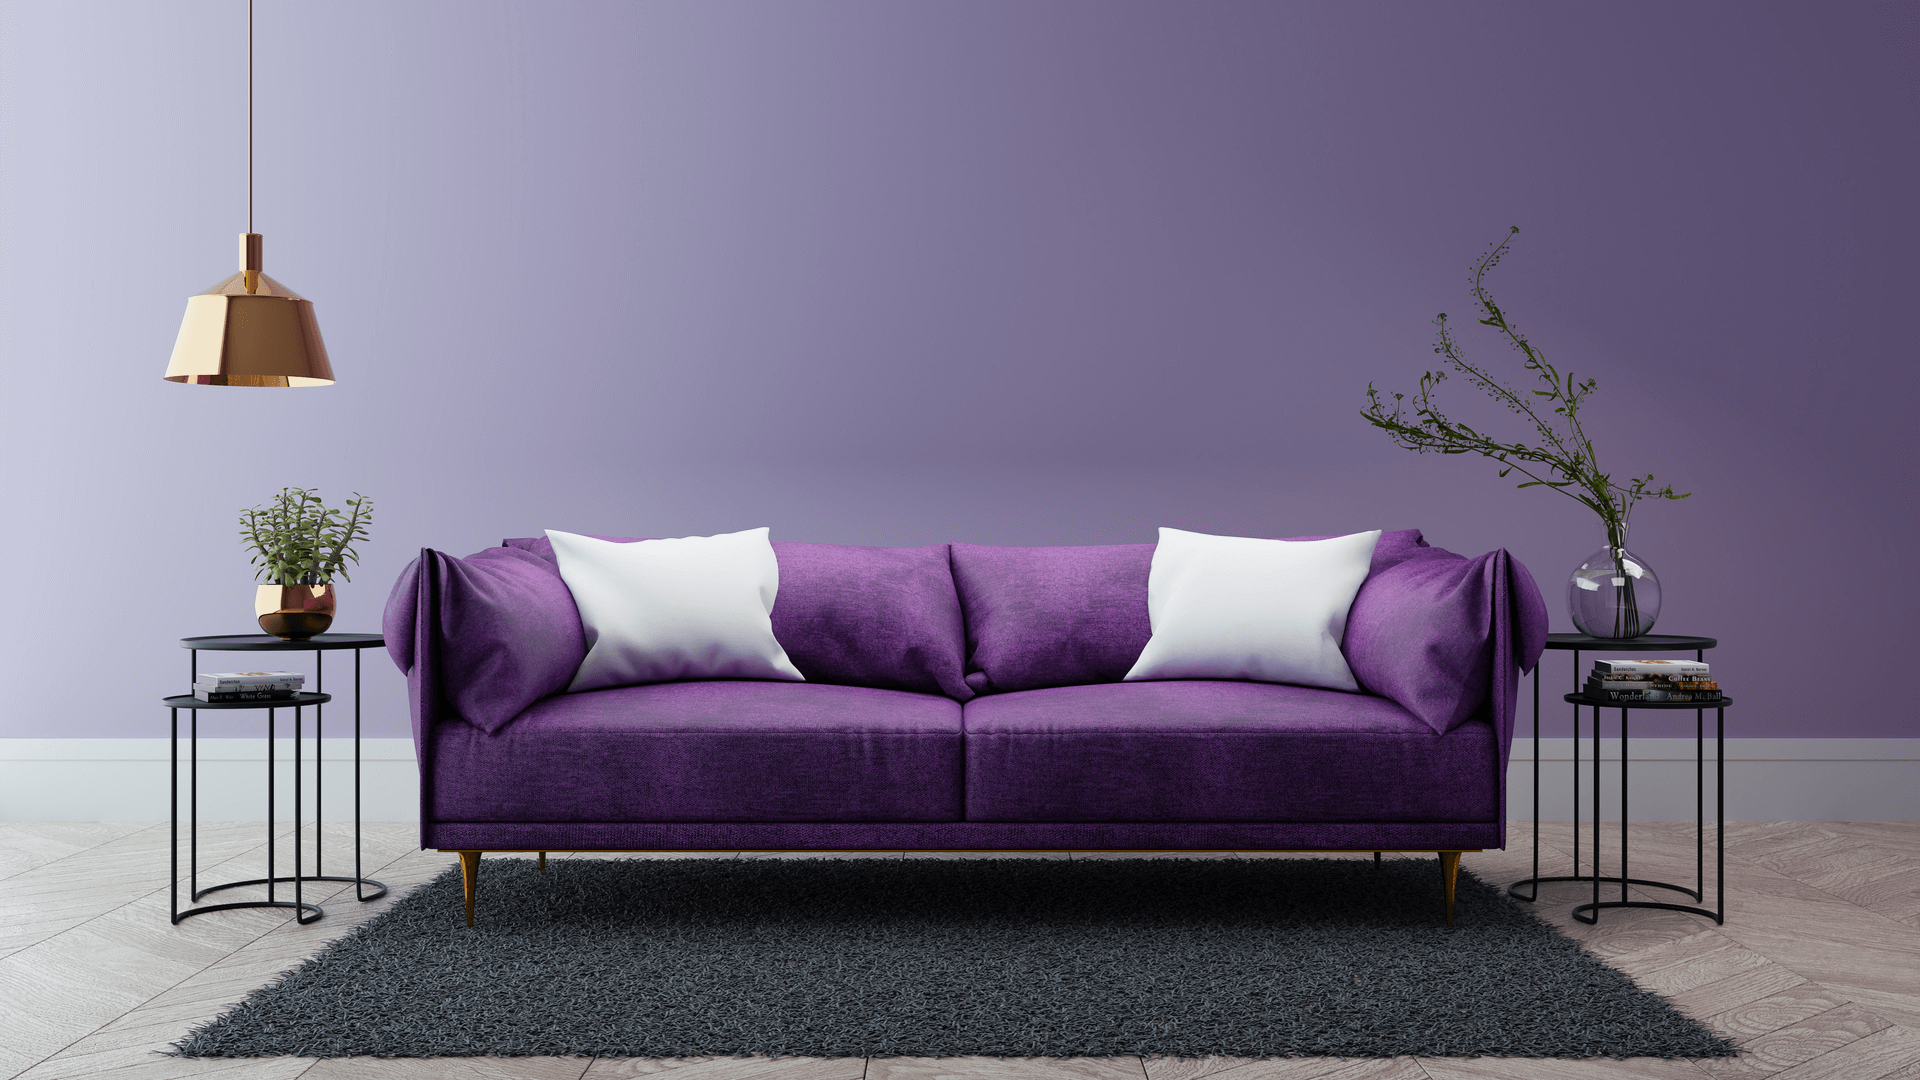 Have a look at the ultra violet color trending this 2018!